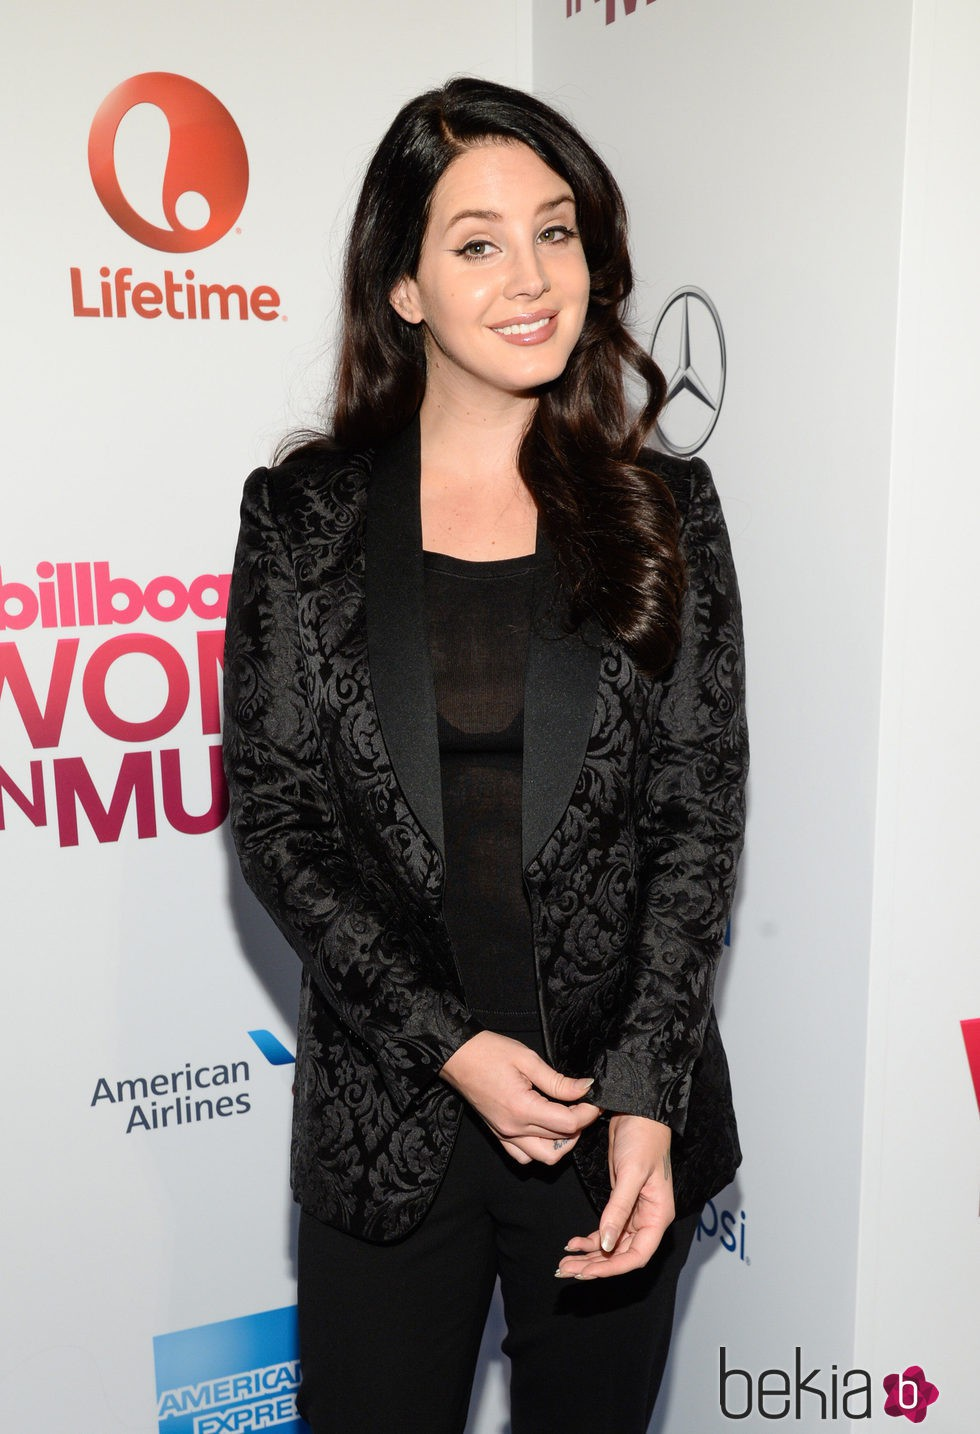 Lana del Rey en los premios Billboard Women in Music 2015